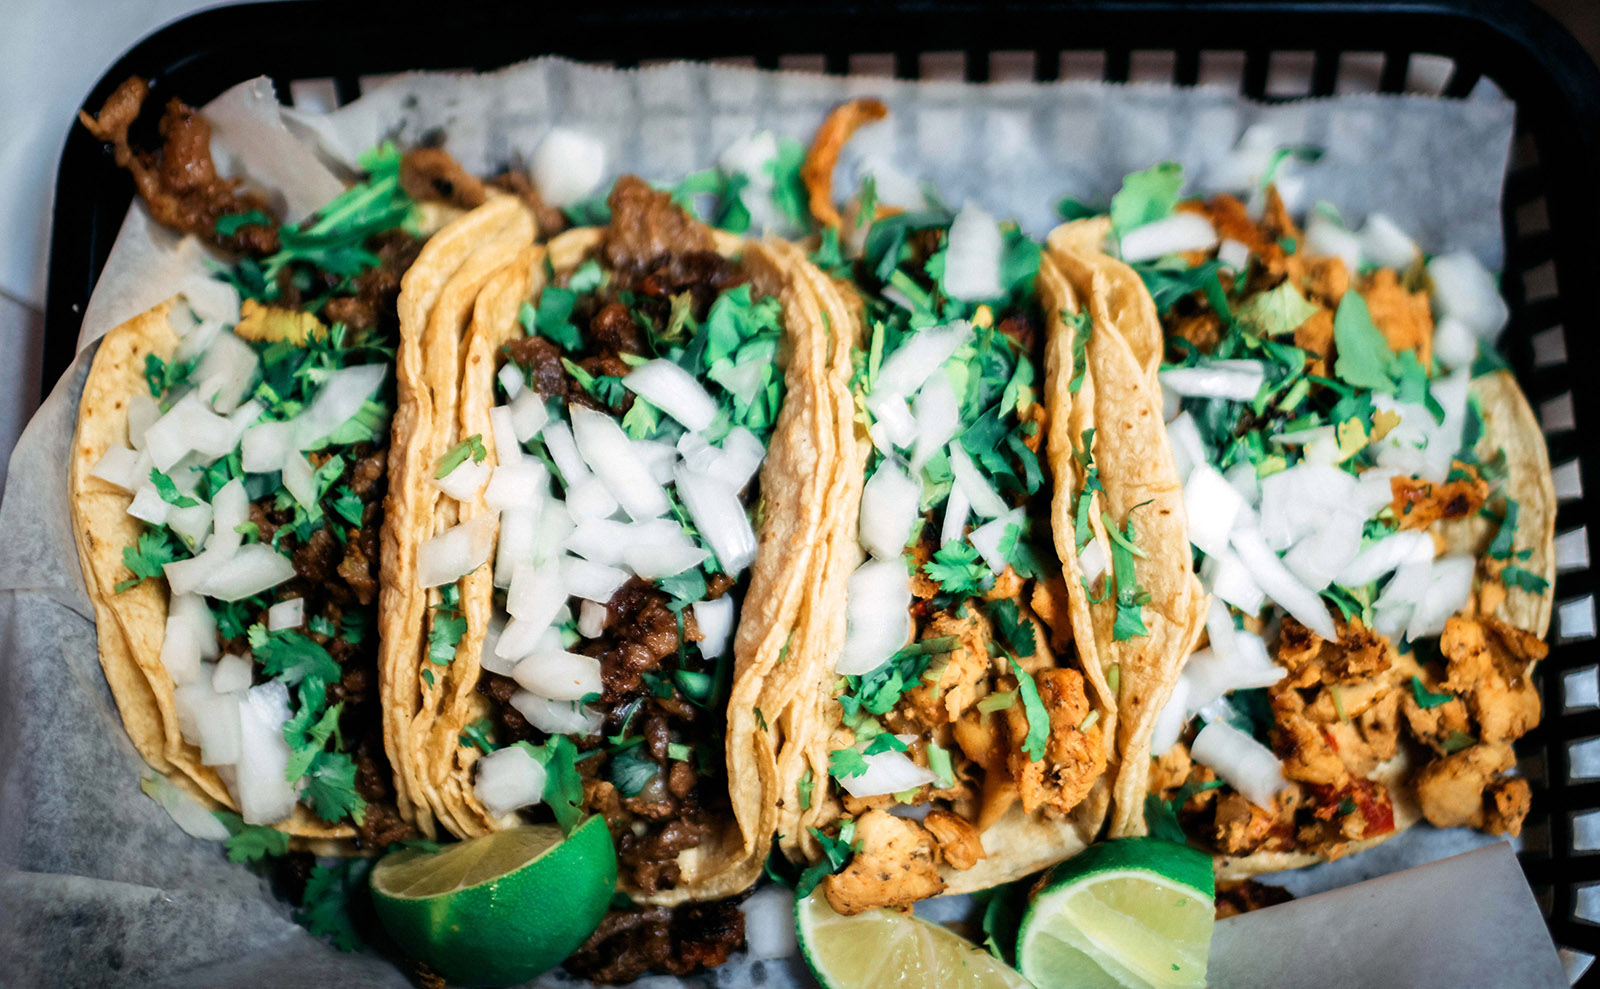 platter of soft tacos with onion and cilantro